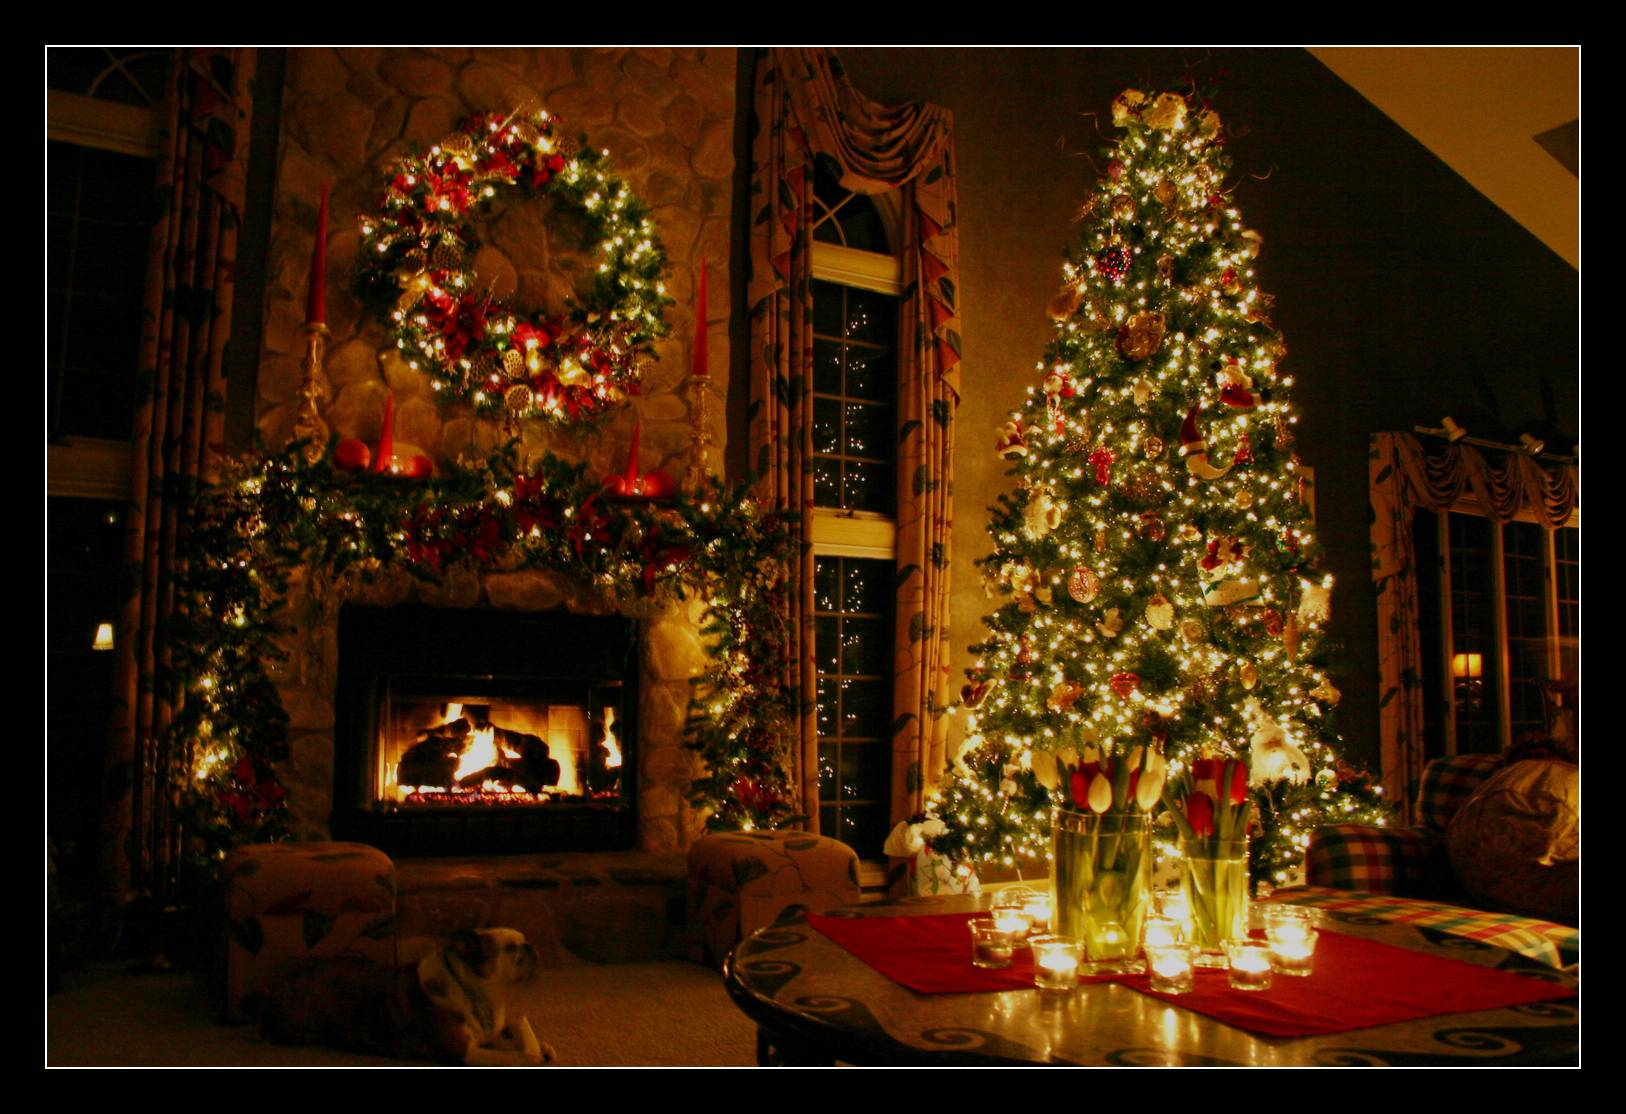 Christmas Fireplace HD Wallpapers